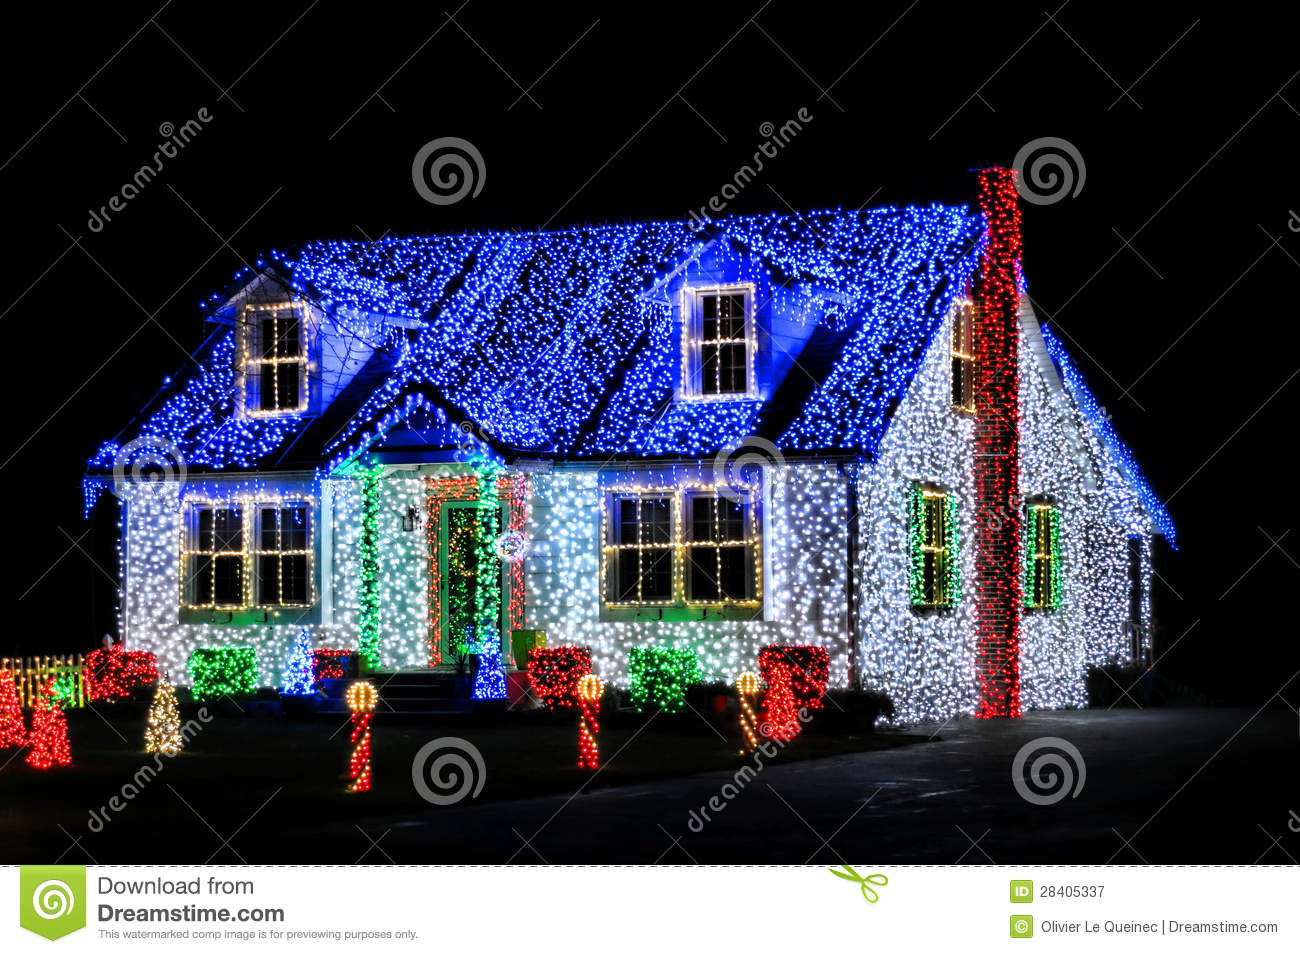 Christmas lights show display on house at night stock for Decoration lumineuse